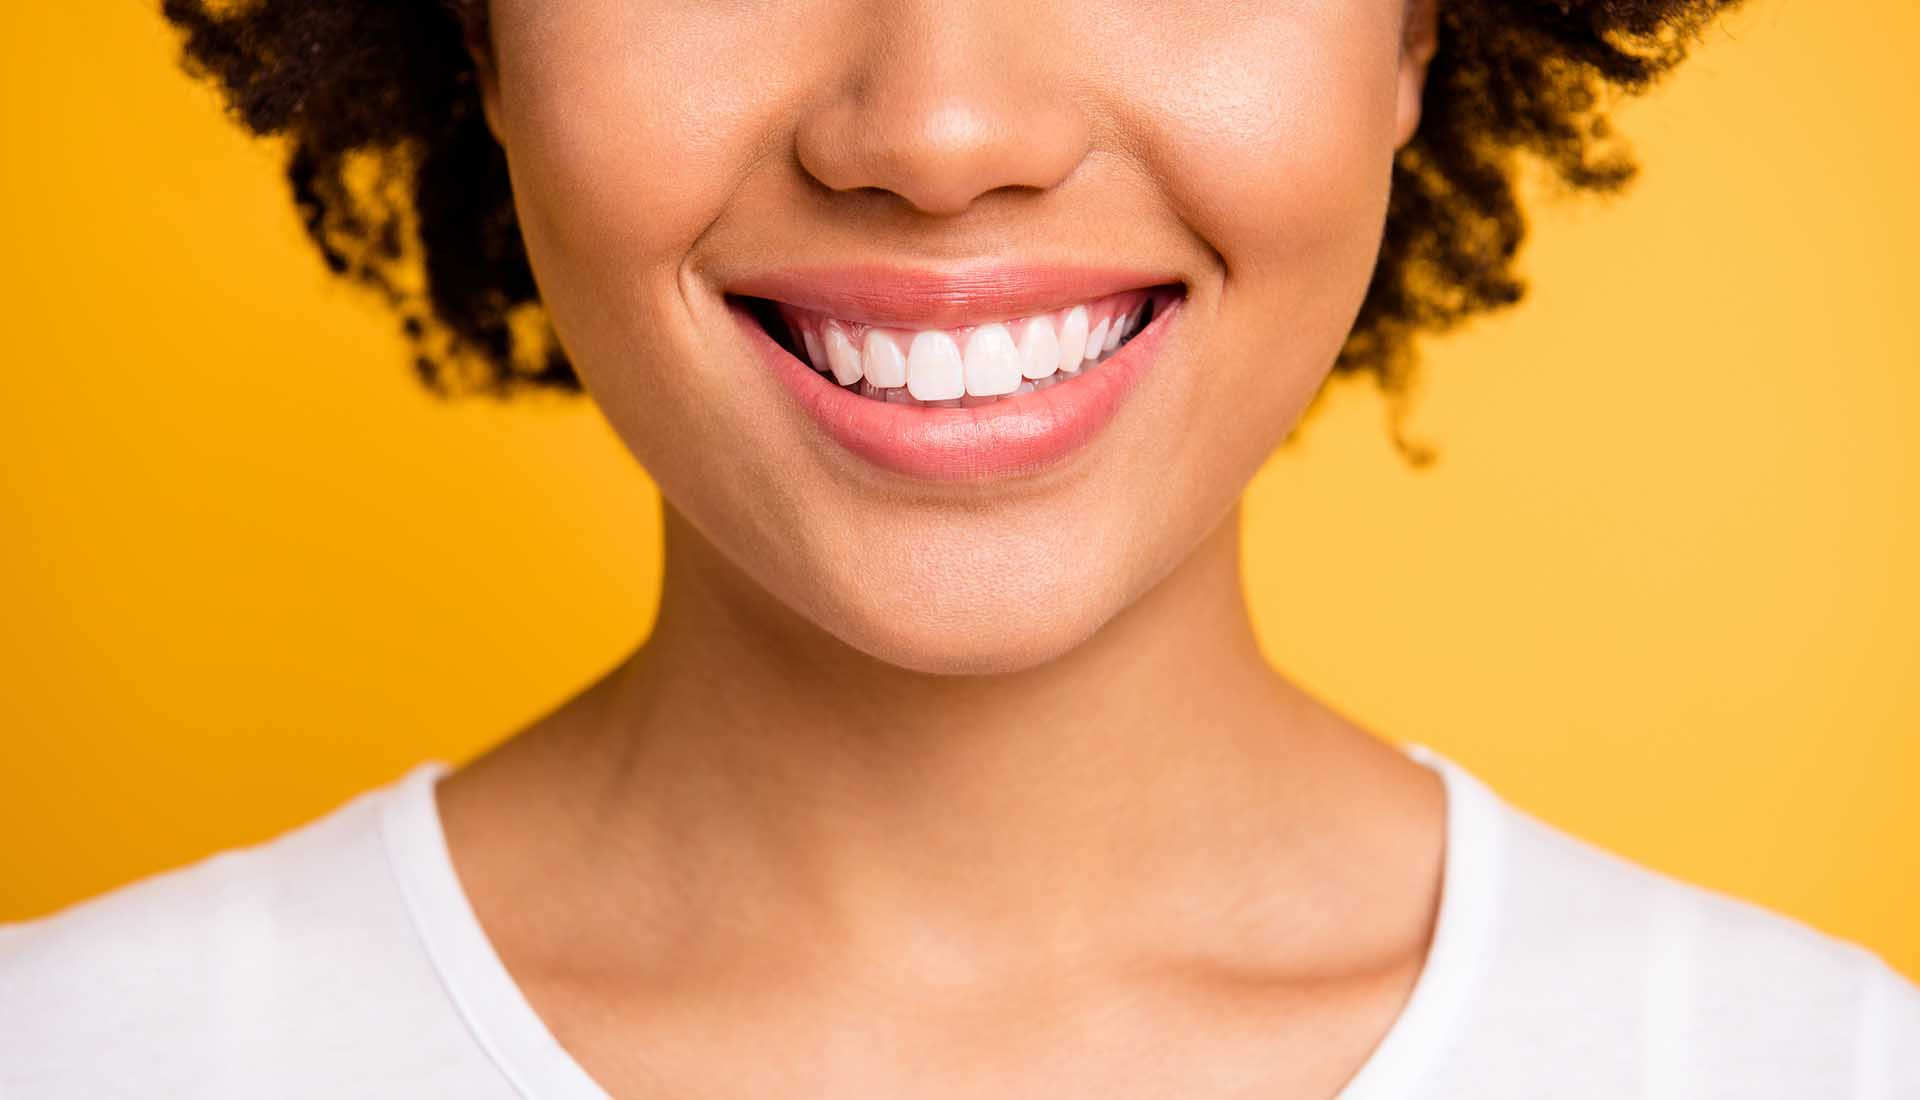 woman after teeth whitening showing her beautiful teeth in a smile